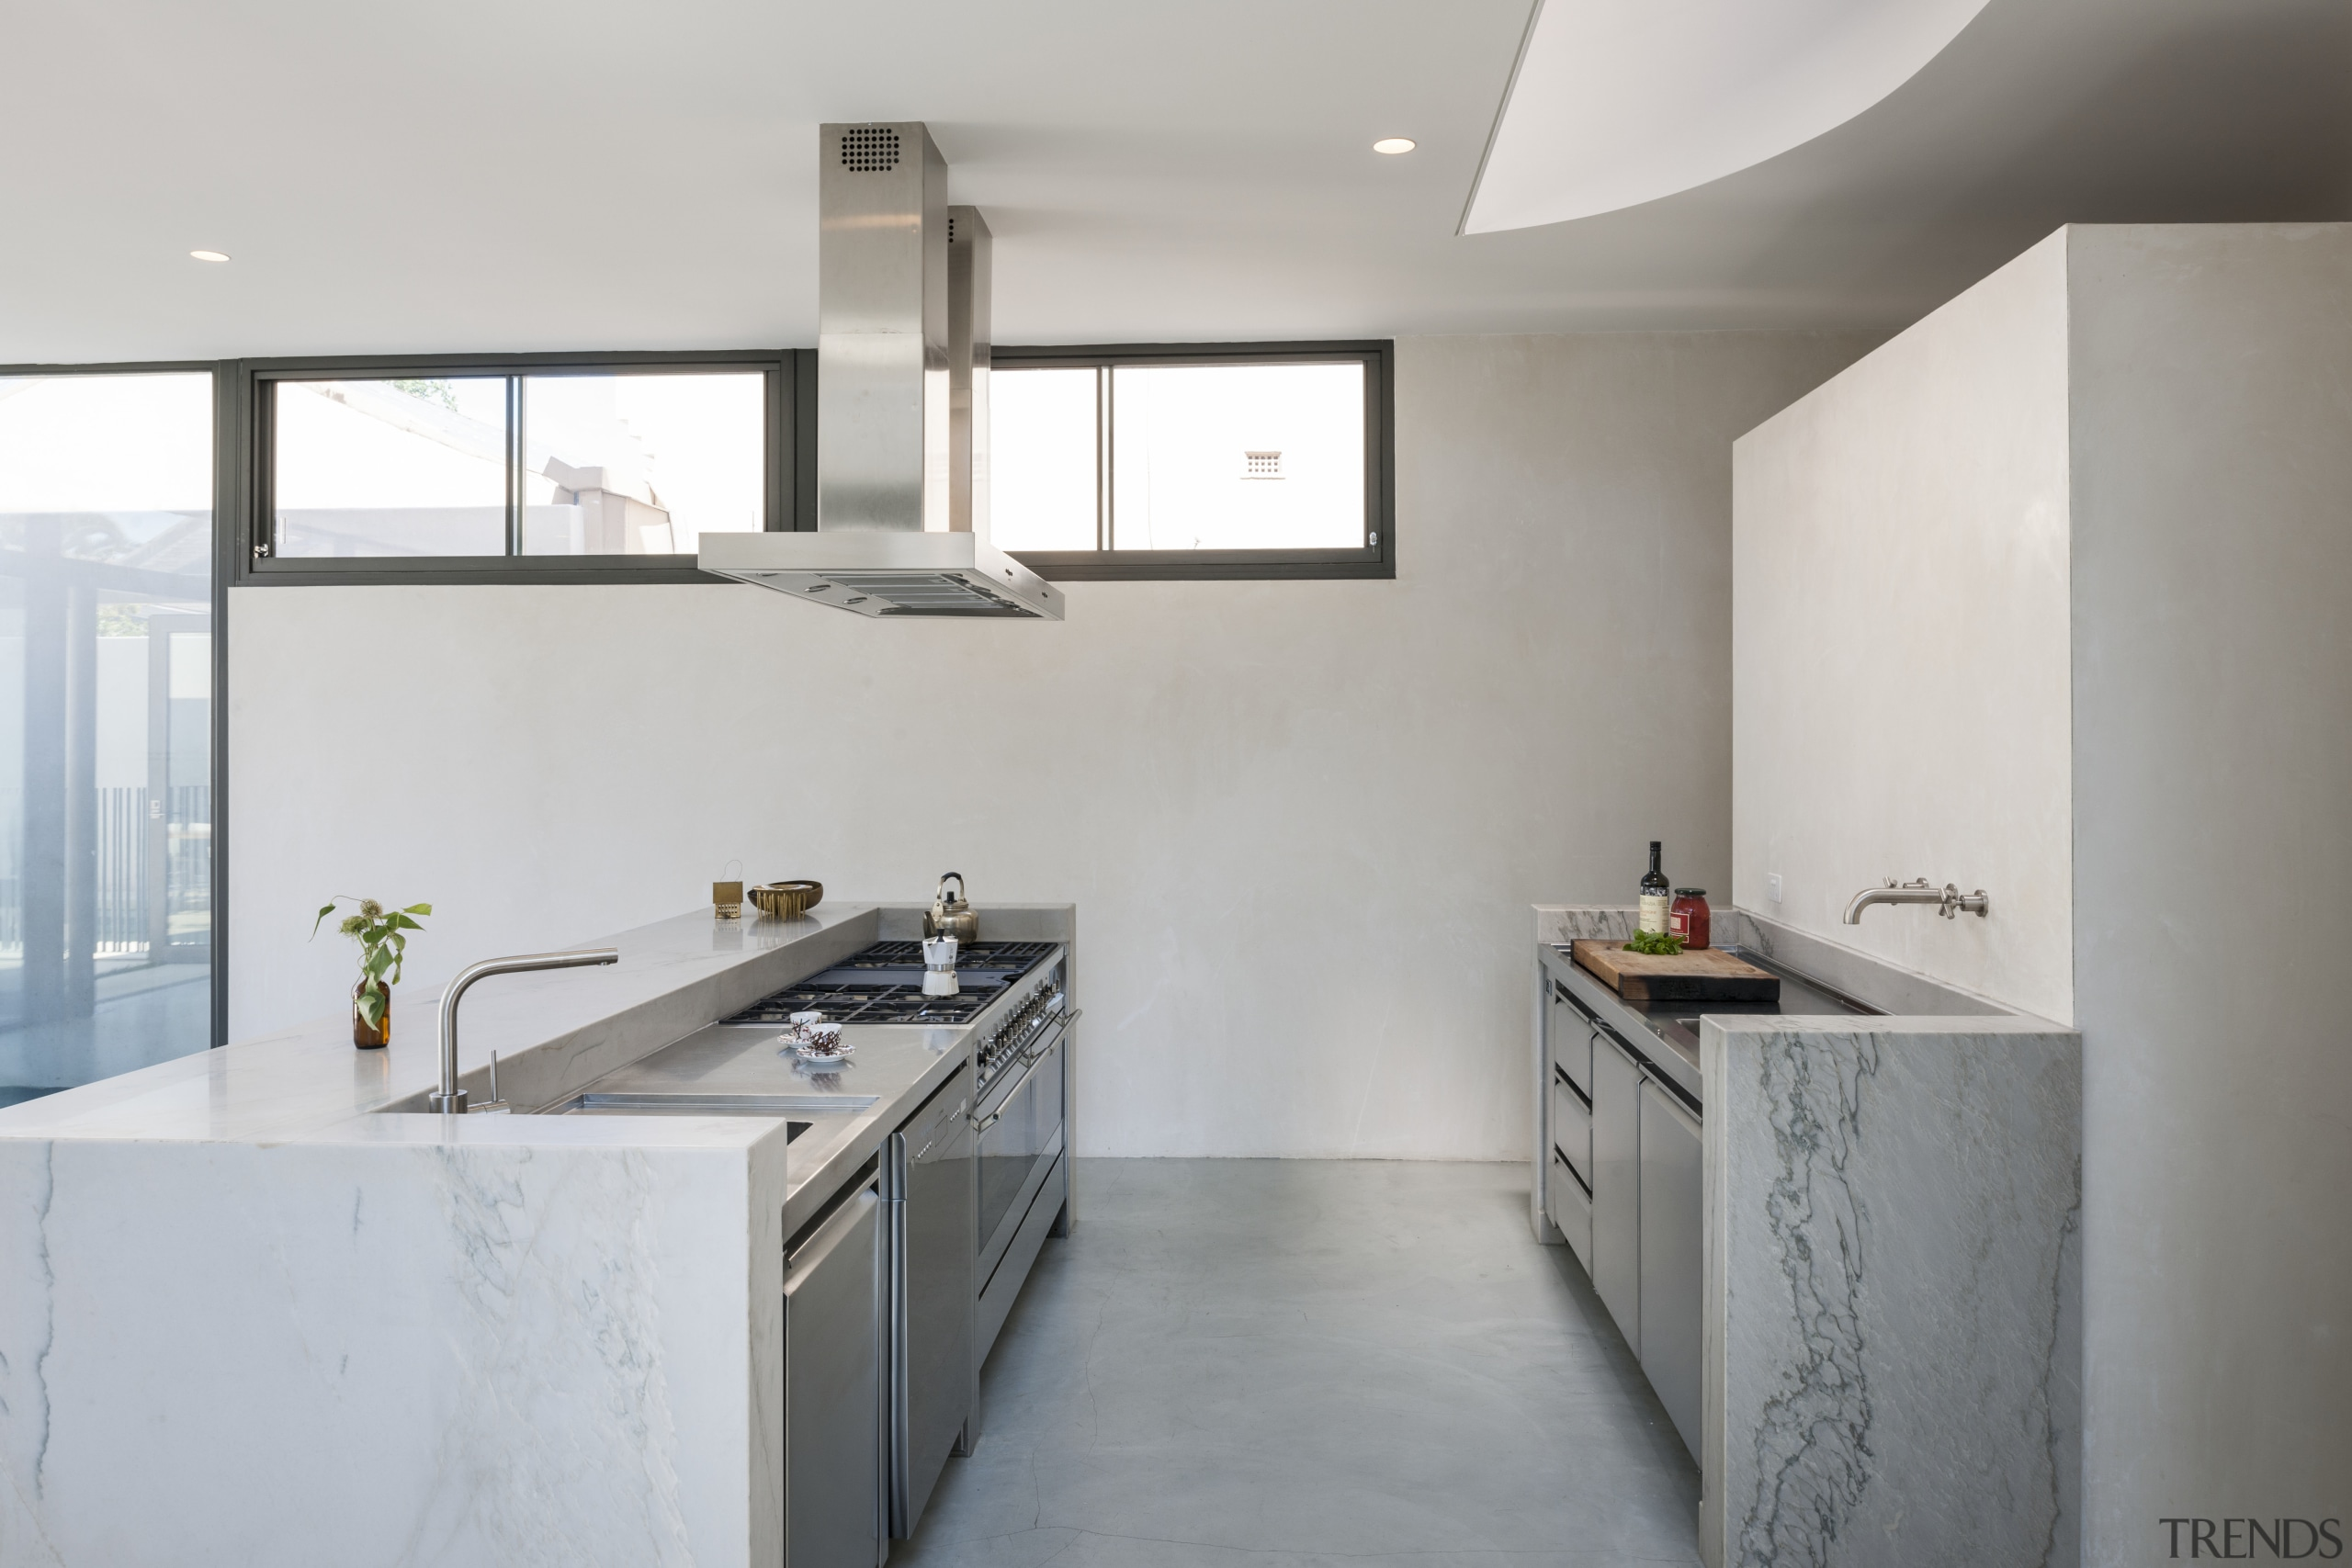 A curved skylight above this new kitchen echoes architecture, bathroom, countertop, floor, home, interior design, kitchen, real estate, room, sink, tap, gray